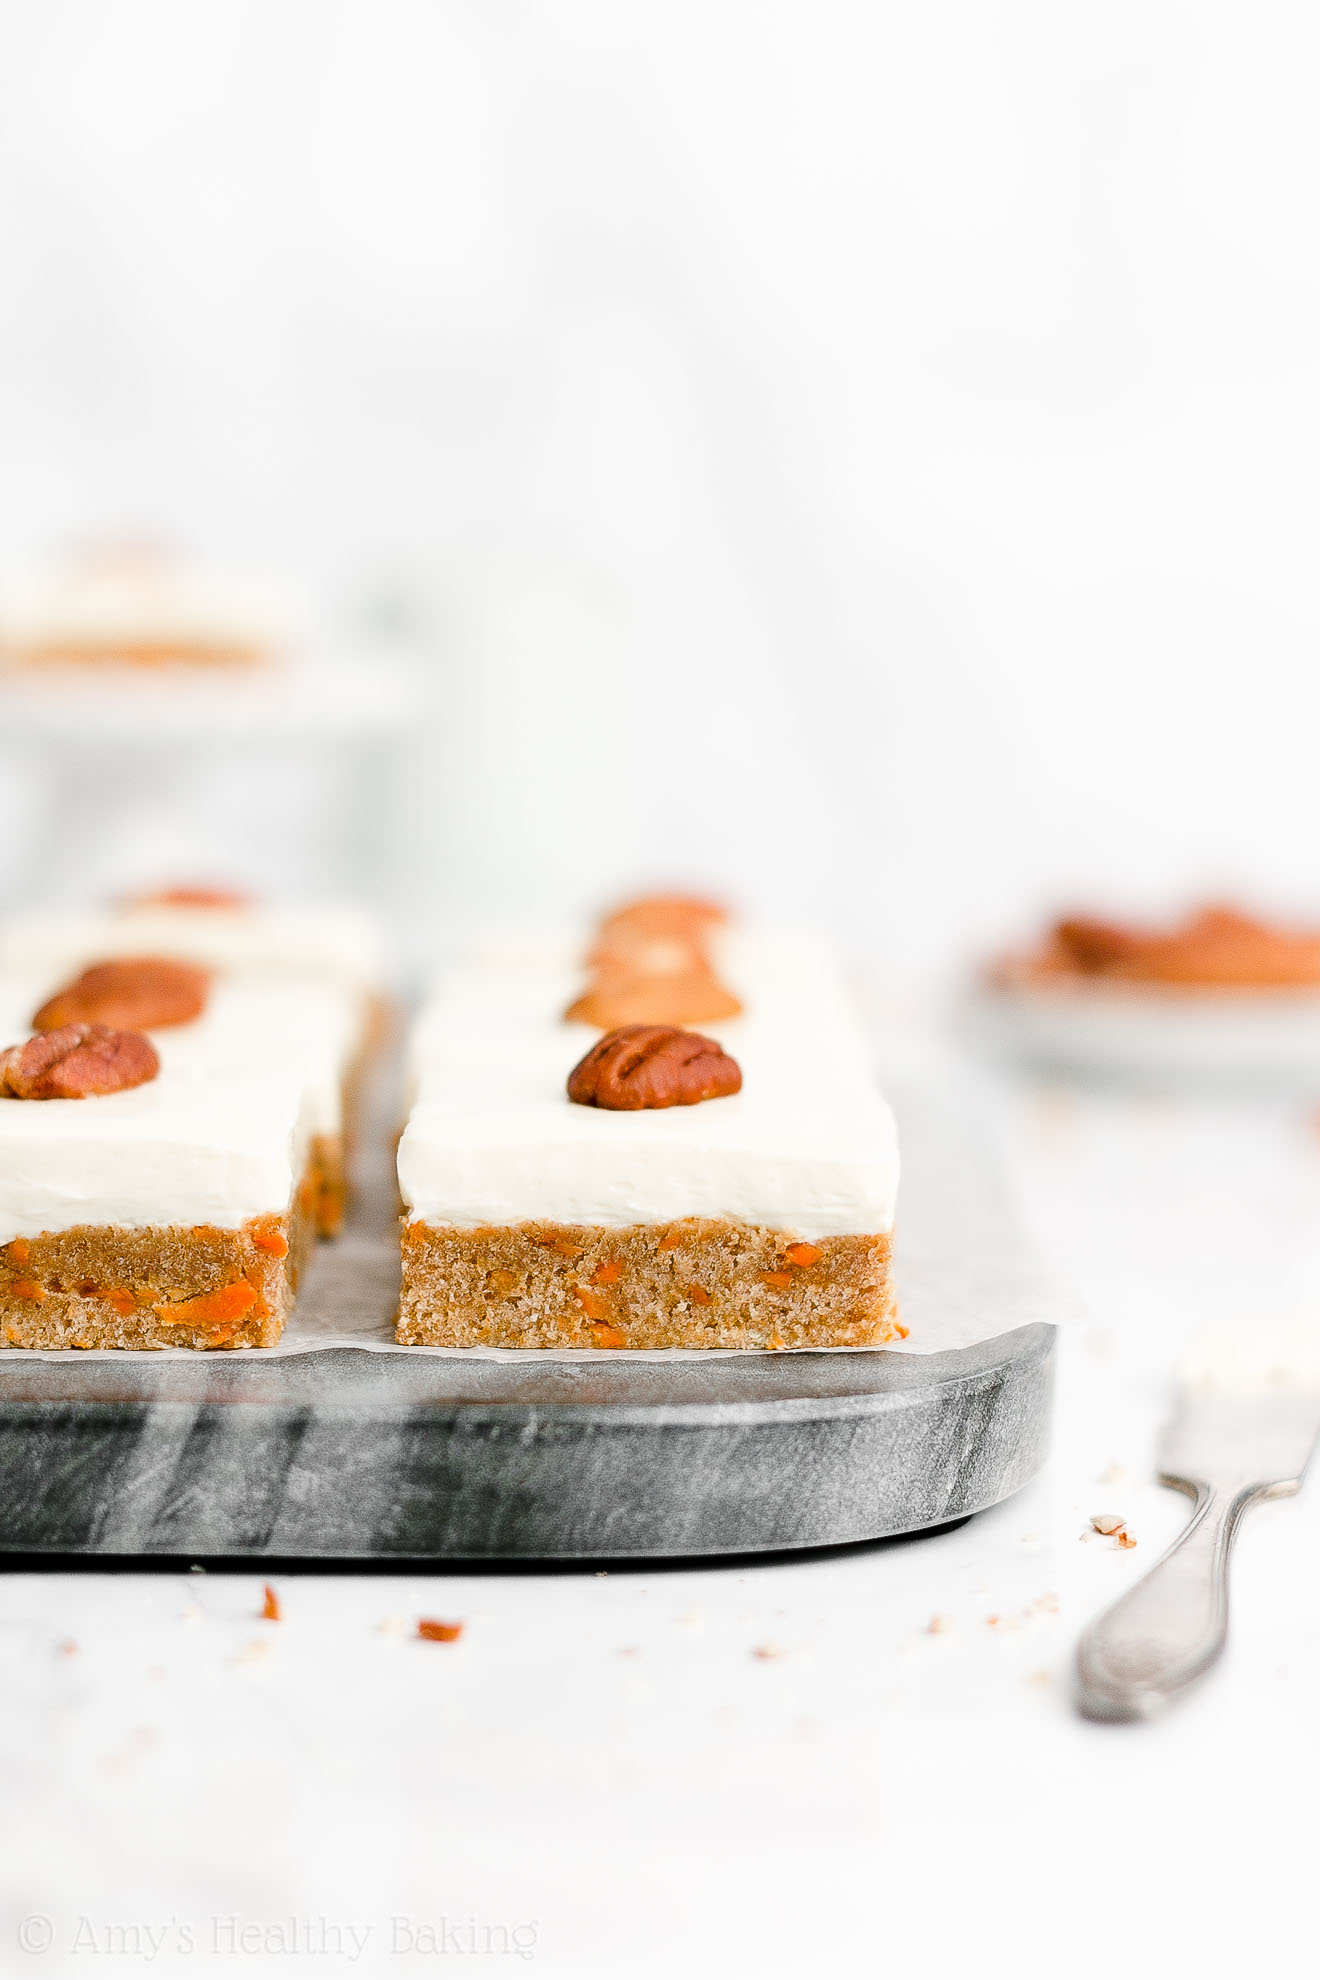 Easy Healthy Homemade Low Calorie Low Sugar Soft Carrot Cake Cookie Bars